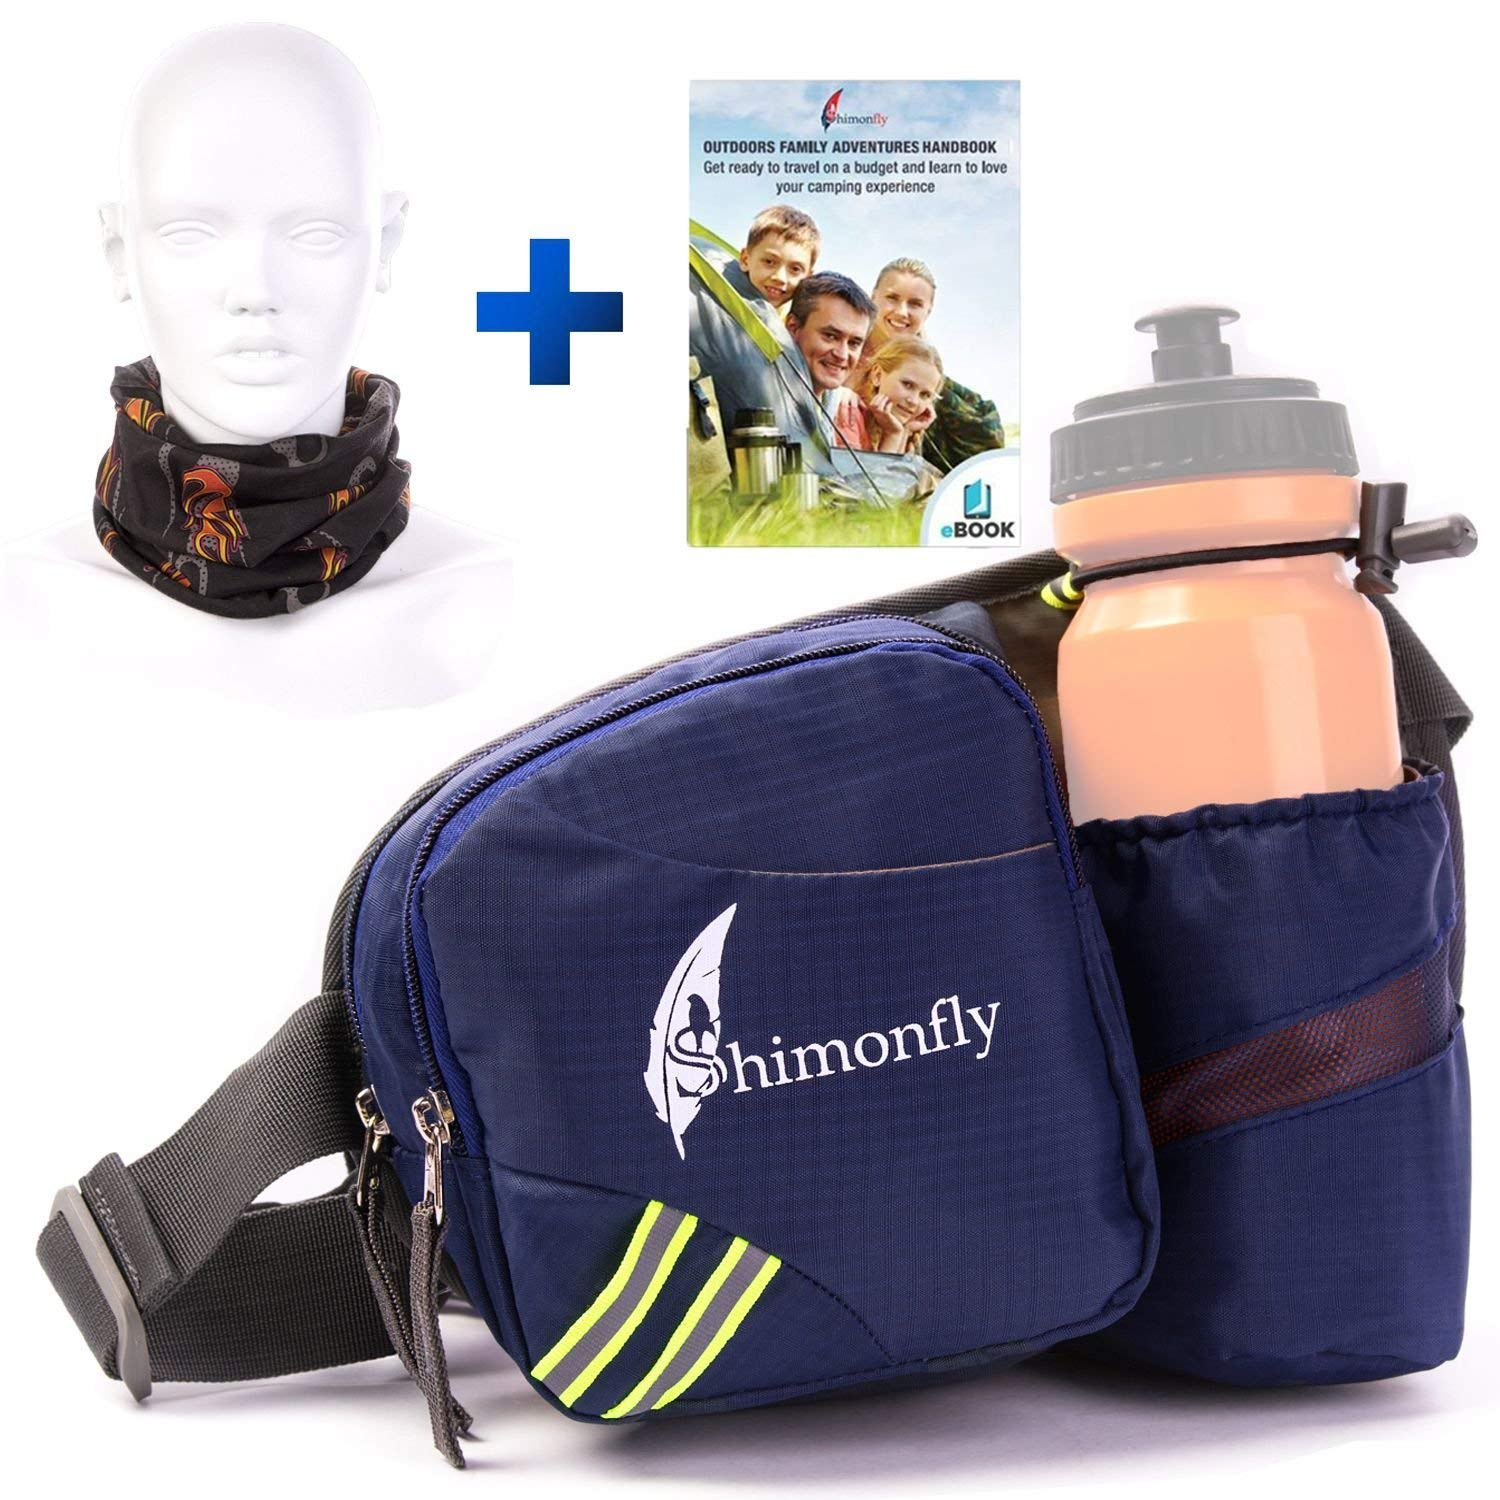 d6fec55569 Amazon.com   Shimonfly Hiking Waist Pack Waterproof Fanny Pack with Water  Bottle Holder and Pockets for Large Smartphones